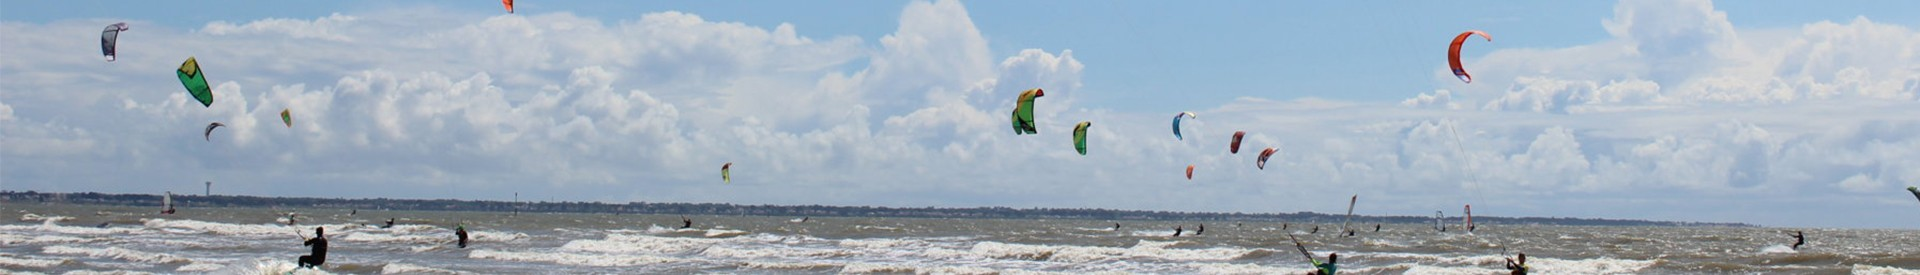 header-kite-stbrevin-261